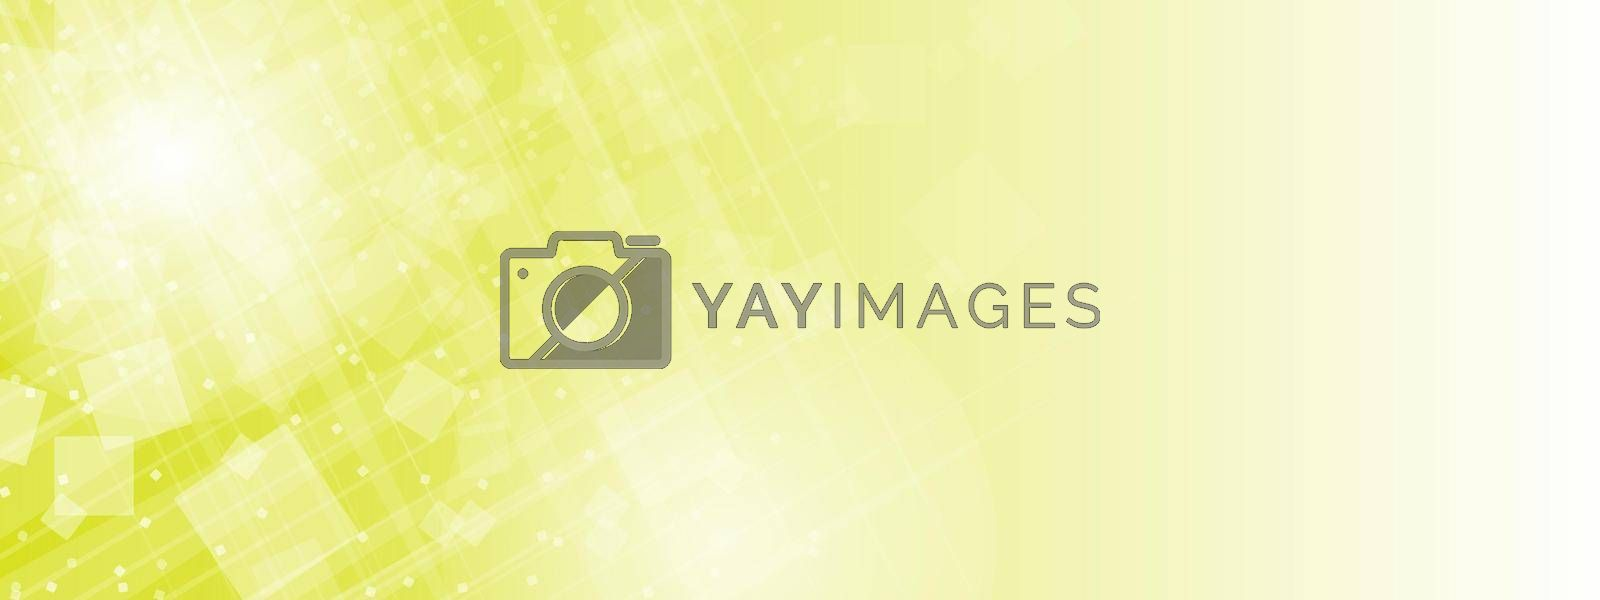 Abstract background in yellow-green shades for banners, posters, postcards and creative design for texture, textiles, packaging and simple backgrounds. Gradient style